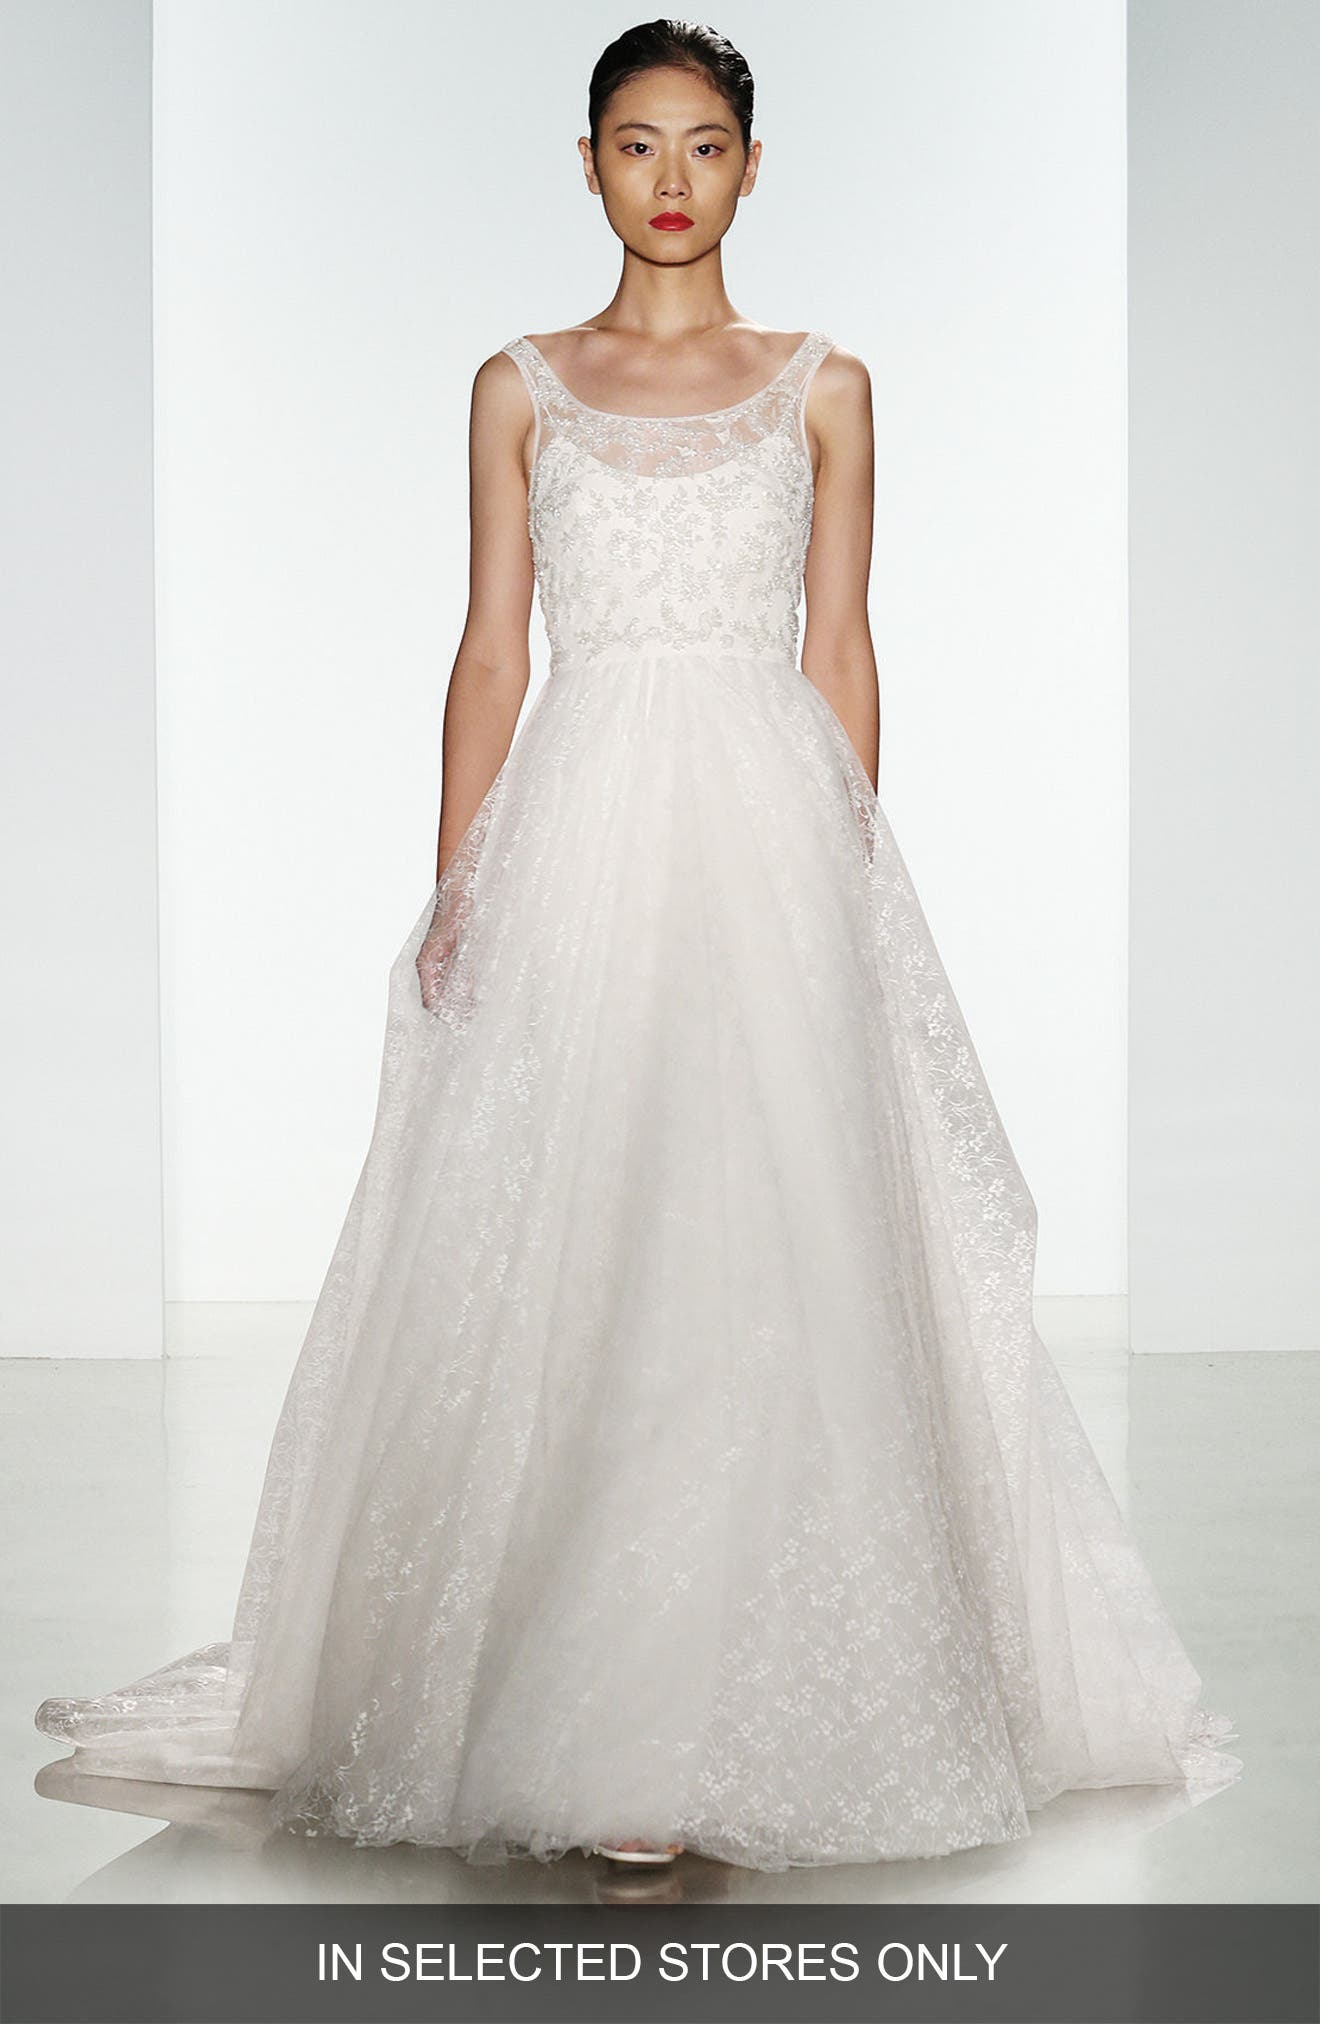 Alternate Image 1 Selected - Christos Bridal Claire Beaded Chantilly Lace & Floral Tulle Ballgown